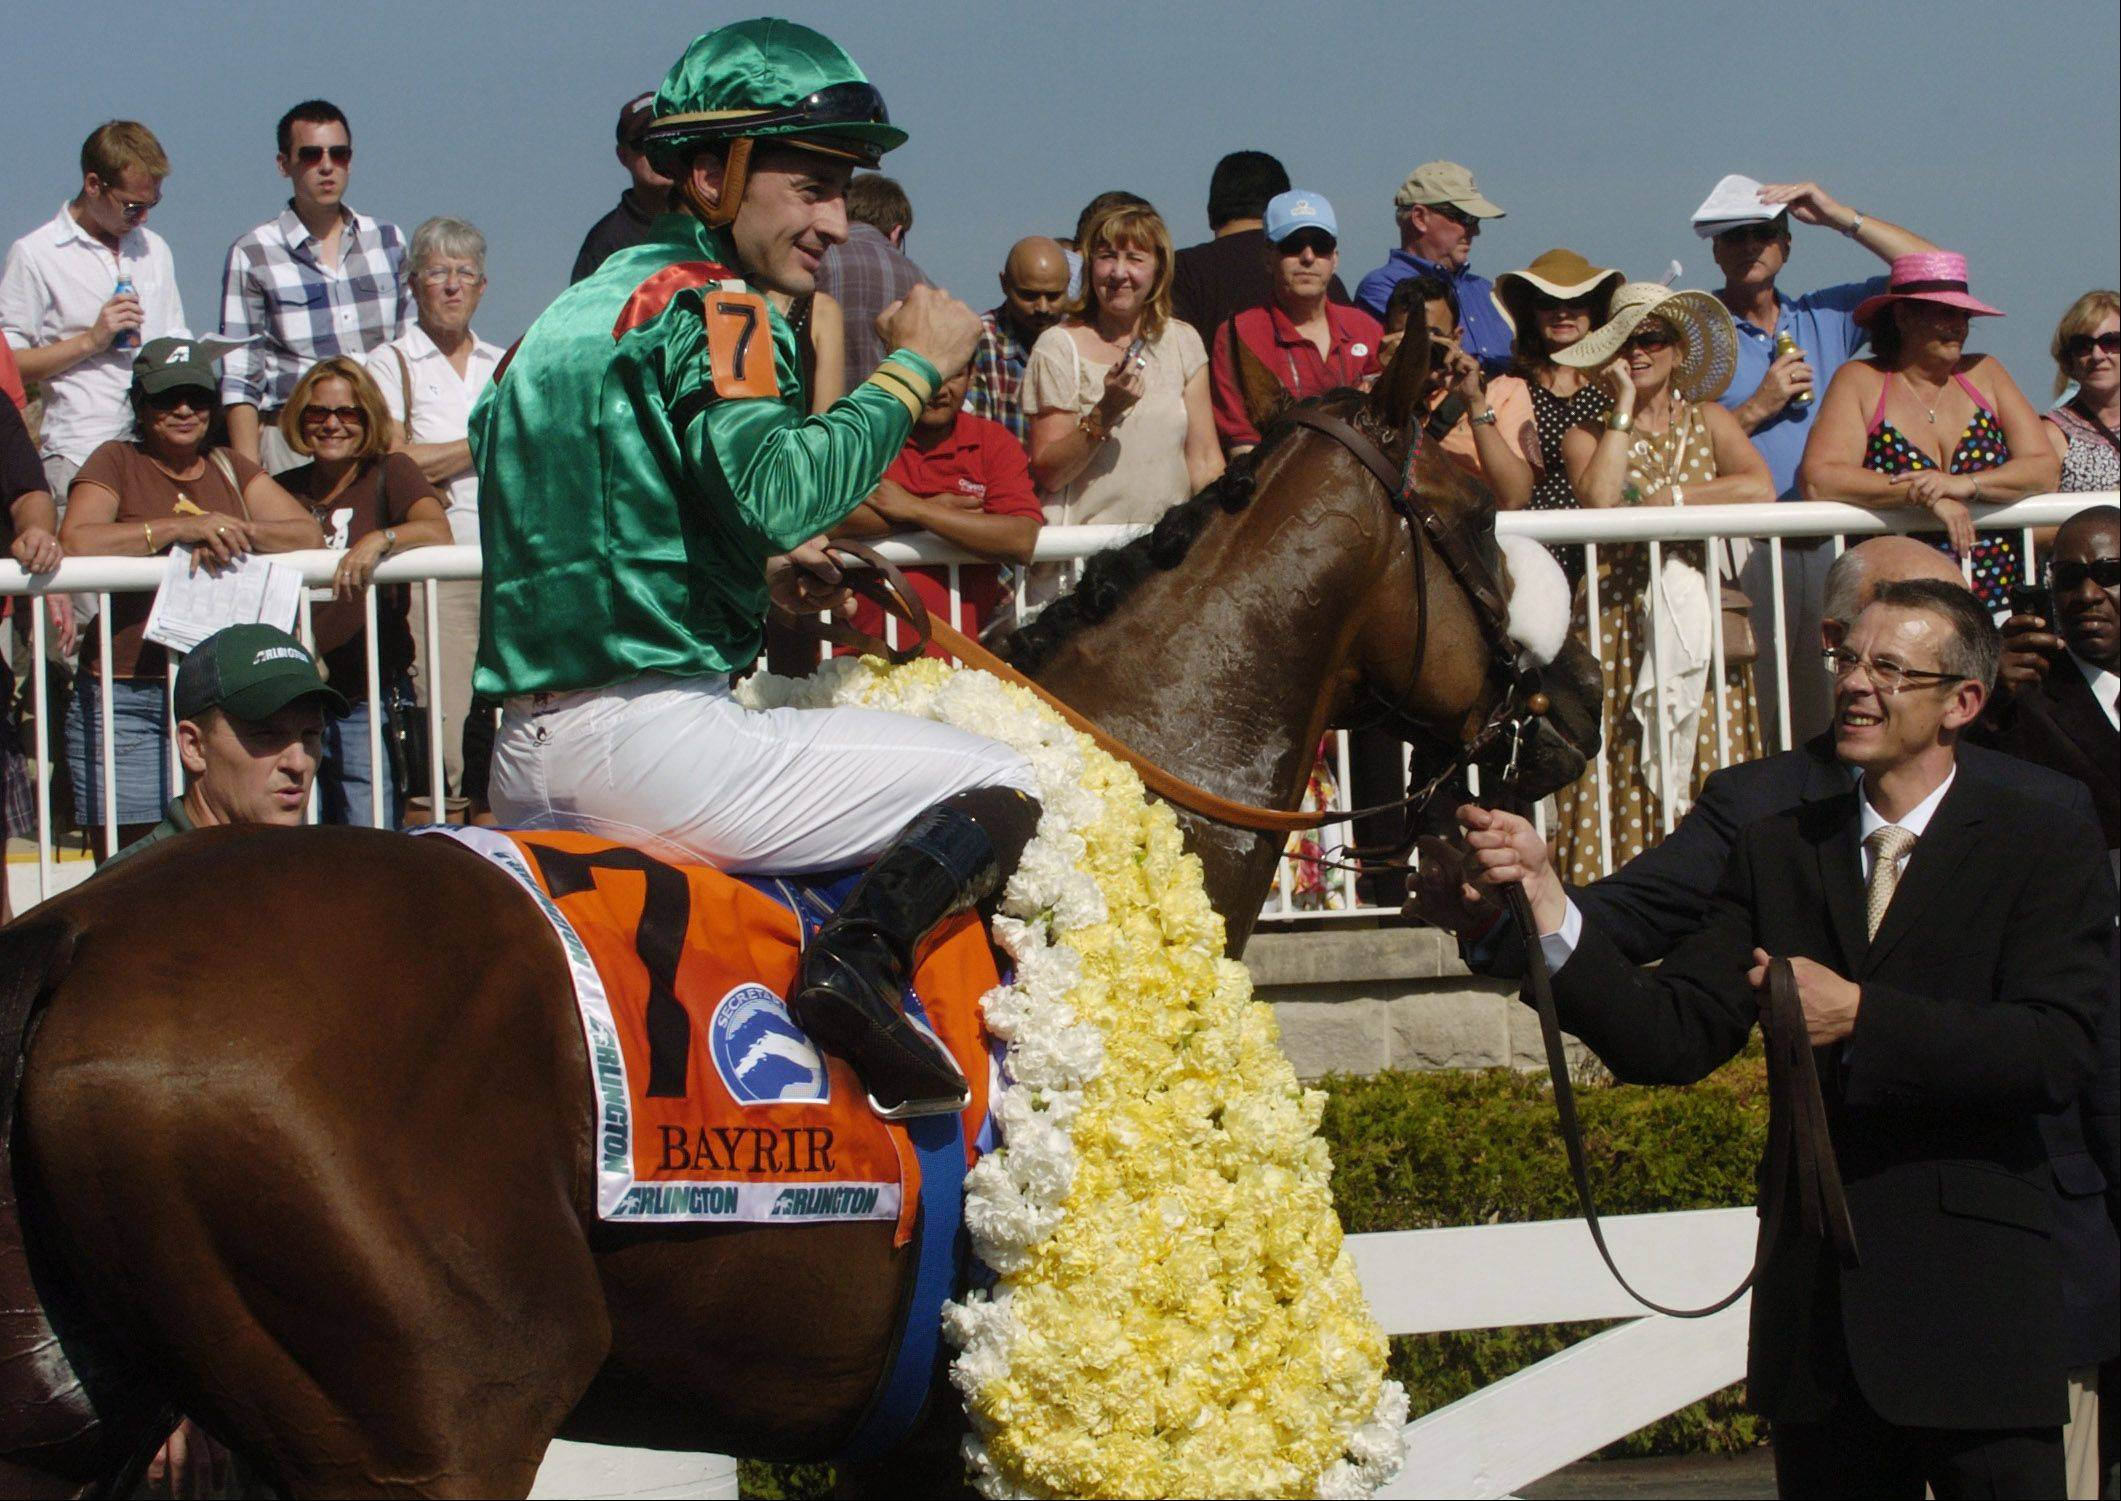 A foreign entry, Bayrir (France) with jockey Christophe Lemaire, captured the 2012 Secretariat at Arlington International Racecourse. This year the field included 10 American horses.